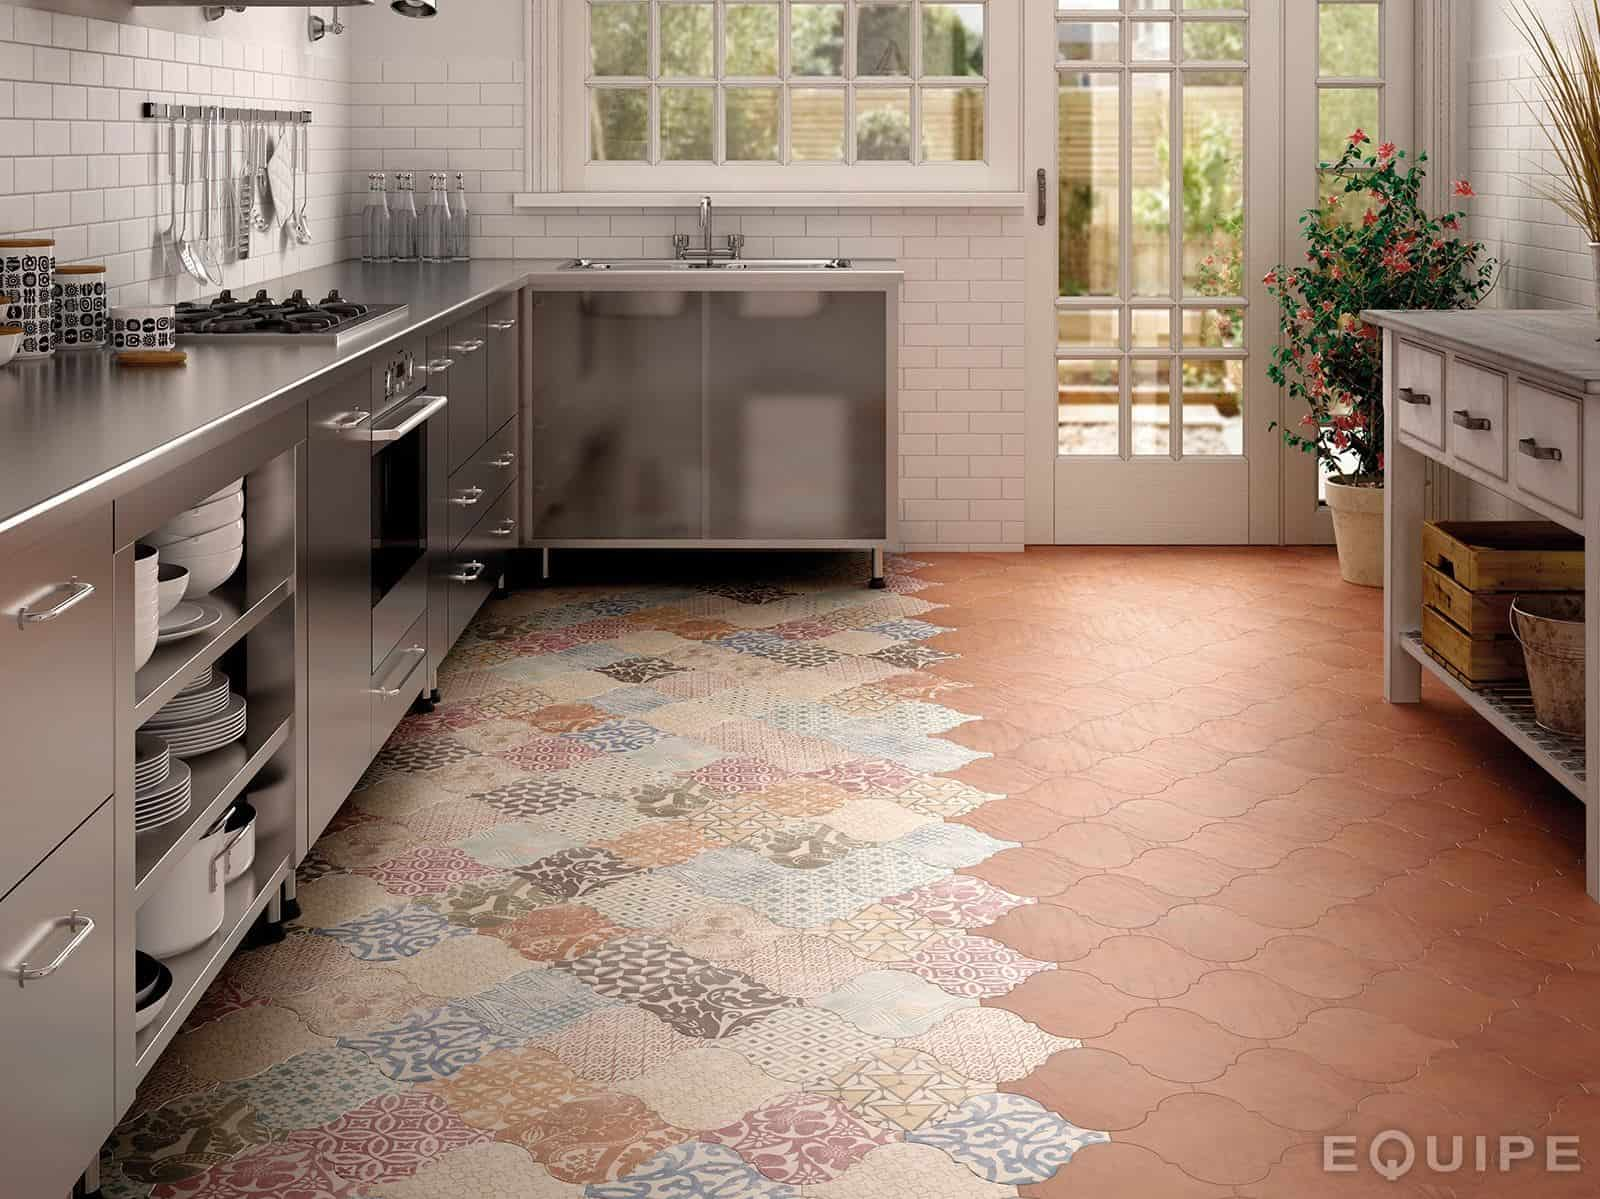 kitchen floor tile. View In Gallery Arabesque Tile Kitchen Floor Patchwork Equipe 4 Jpg 21 Arabesque Tile Ideas For Floor  Wall And Backsplash